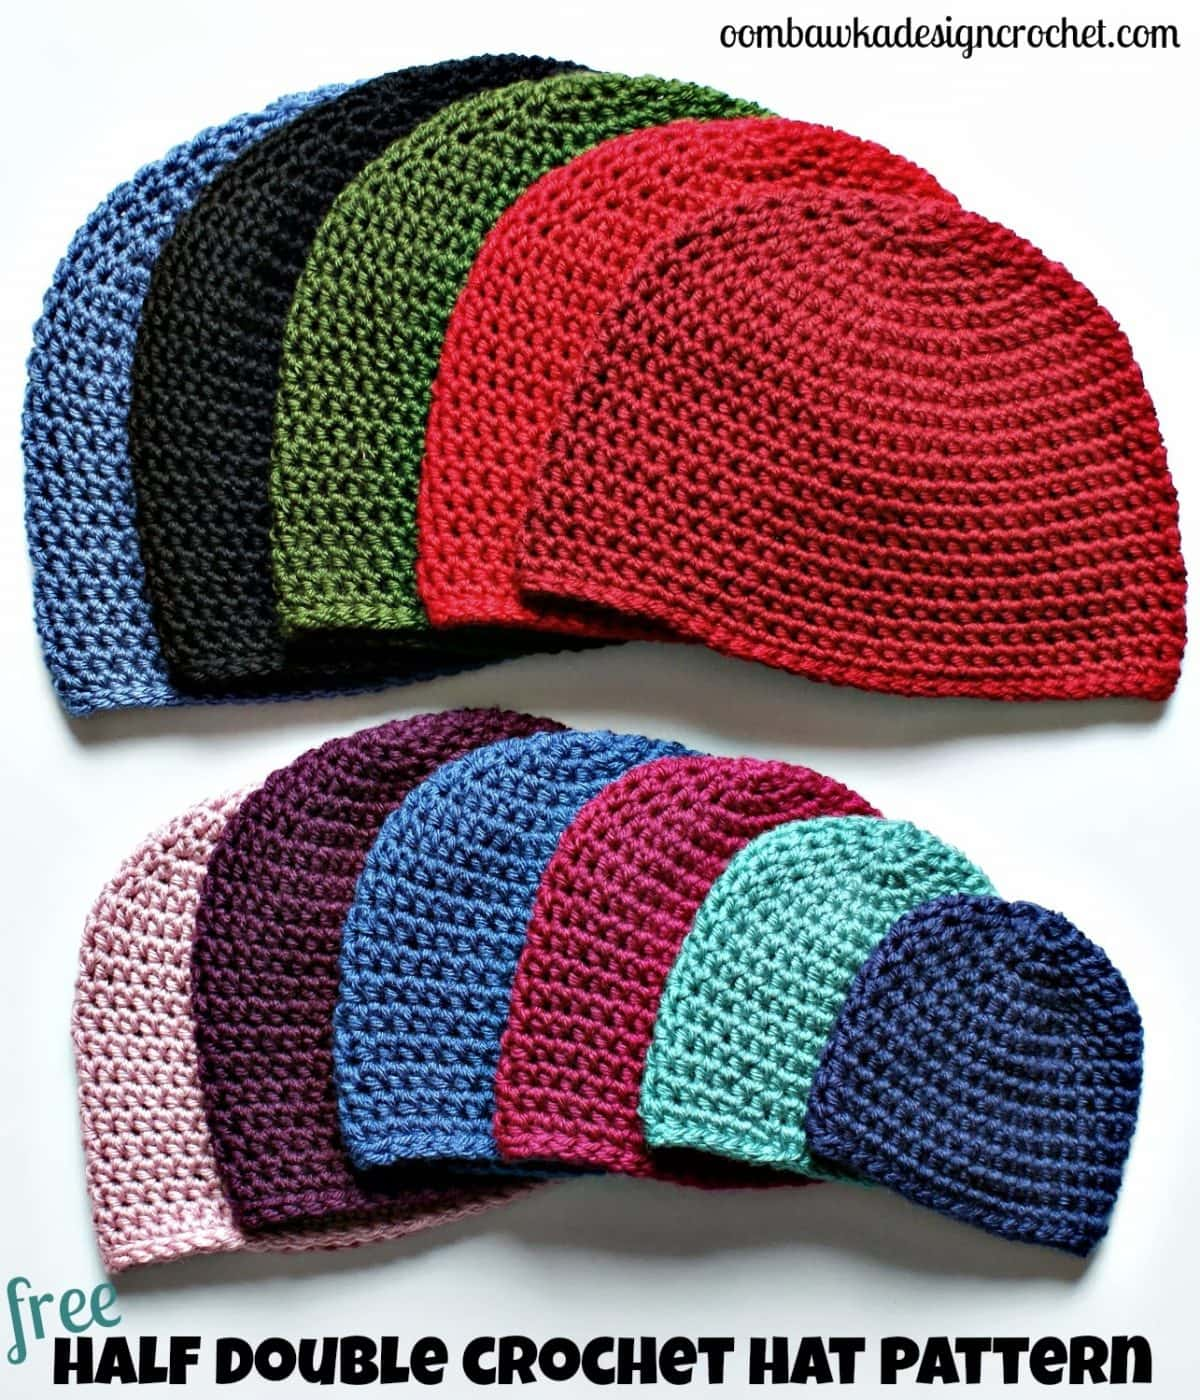 Free Crochet Hat Patterns Nz : Crochet Hat Pattern - Free Crochet Pattern Oombawka ...